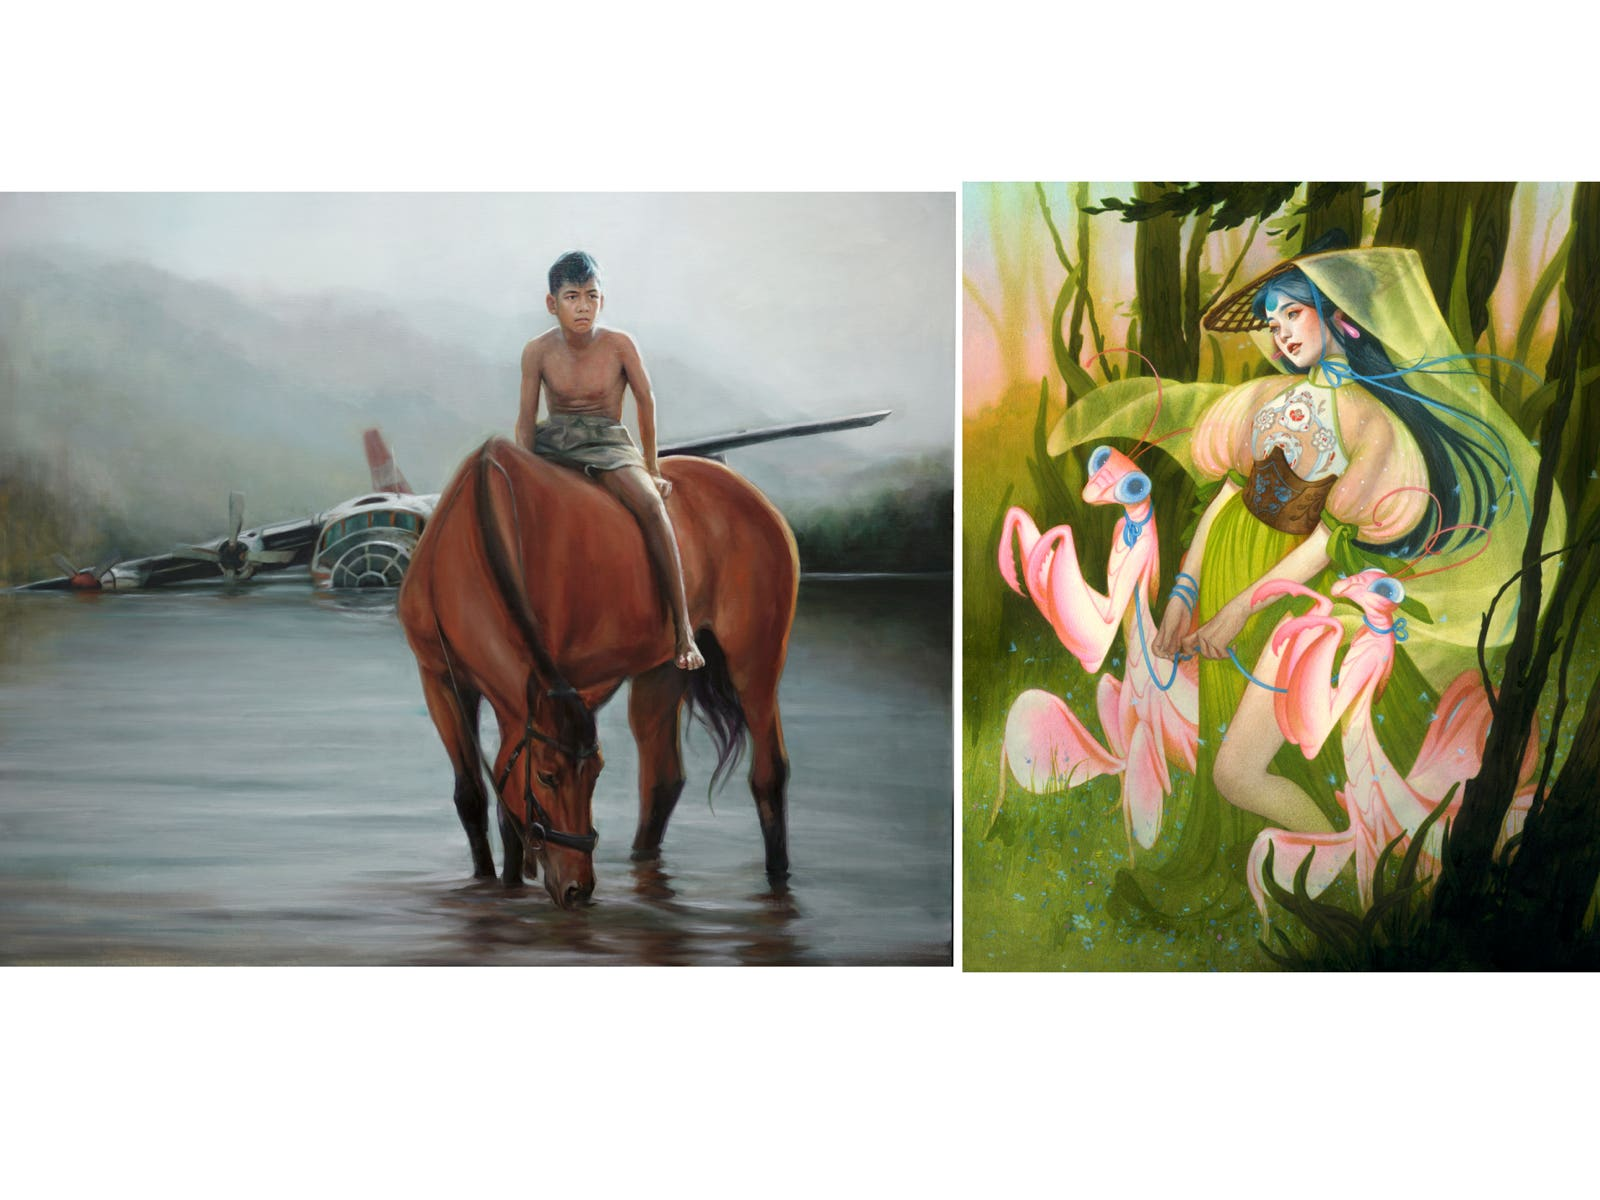 Work by Evoca1 (left) and Tran Nguyen (right)